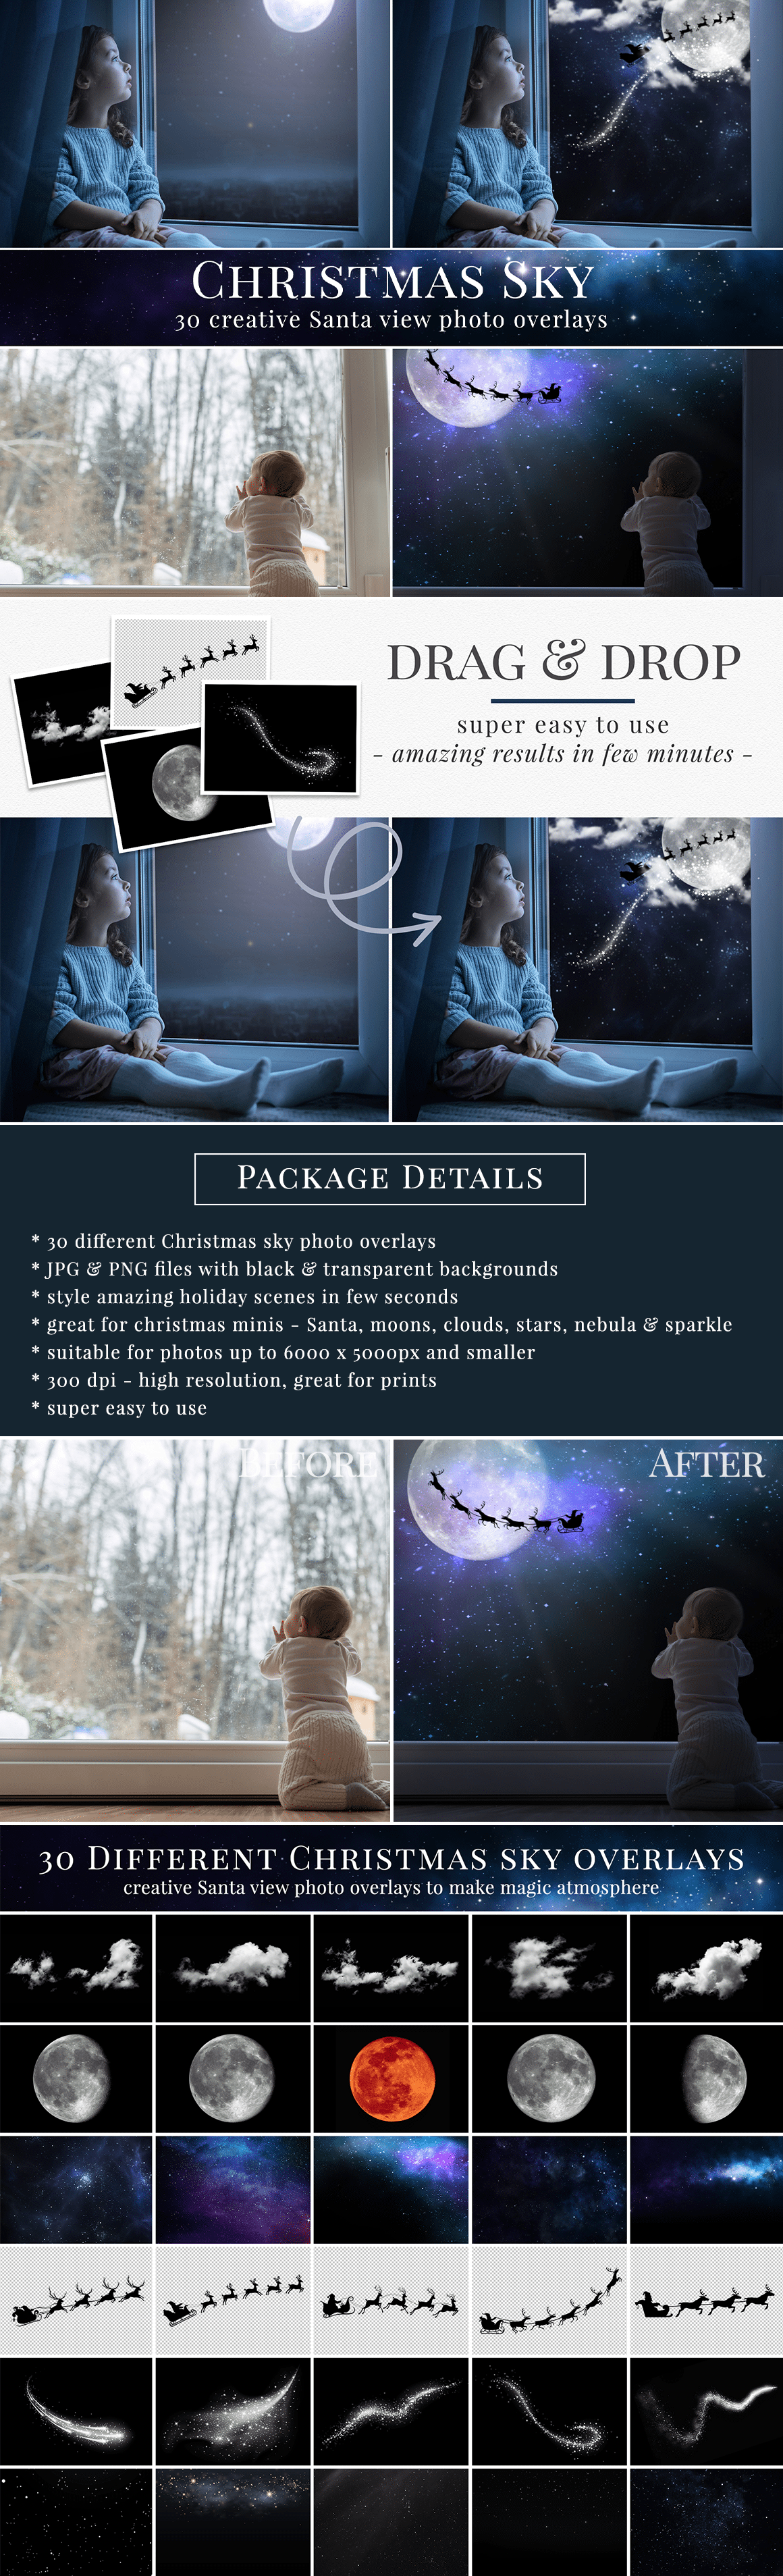 Create stunning Christmas photography with our Santa view overlays. 30 different Christmas sky photo overlays - Santa, moons, clouds, sparkle, stars & nebulas designs. Great for holiday mini sessions with kids, families & portraits. Drag & drop - very easy to use, fast and simple. Fabulous results just in few seconds. Professional holiday photo overlays for Photoshop, Zoner, Gimp, PicMoneky, Canva, etc. Photo overlays for creative photographers from Brown Leopard.